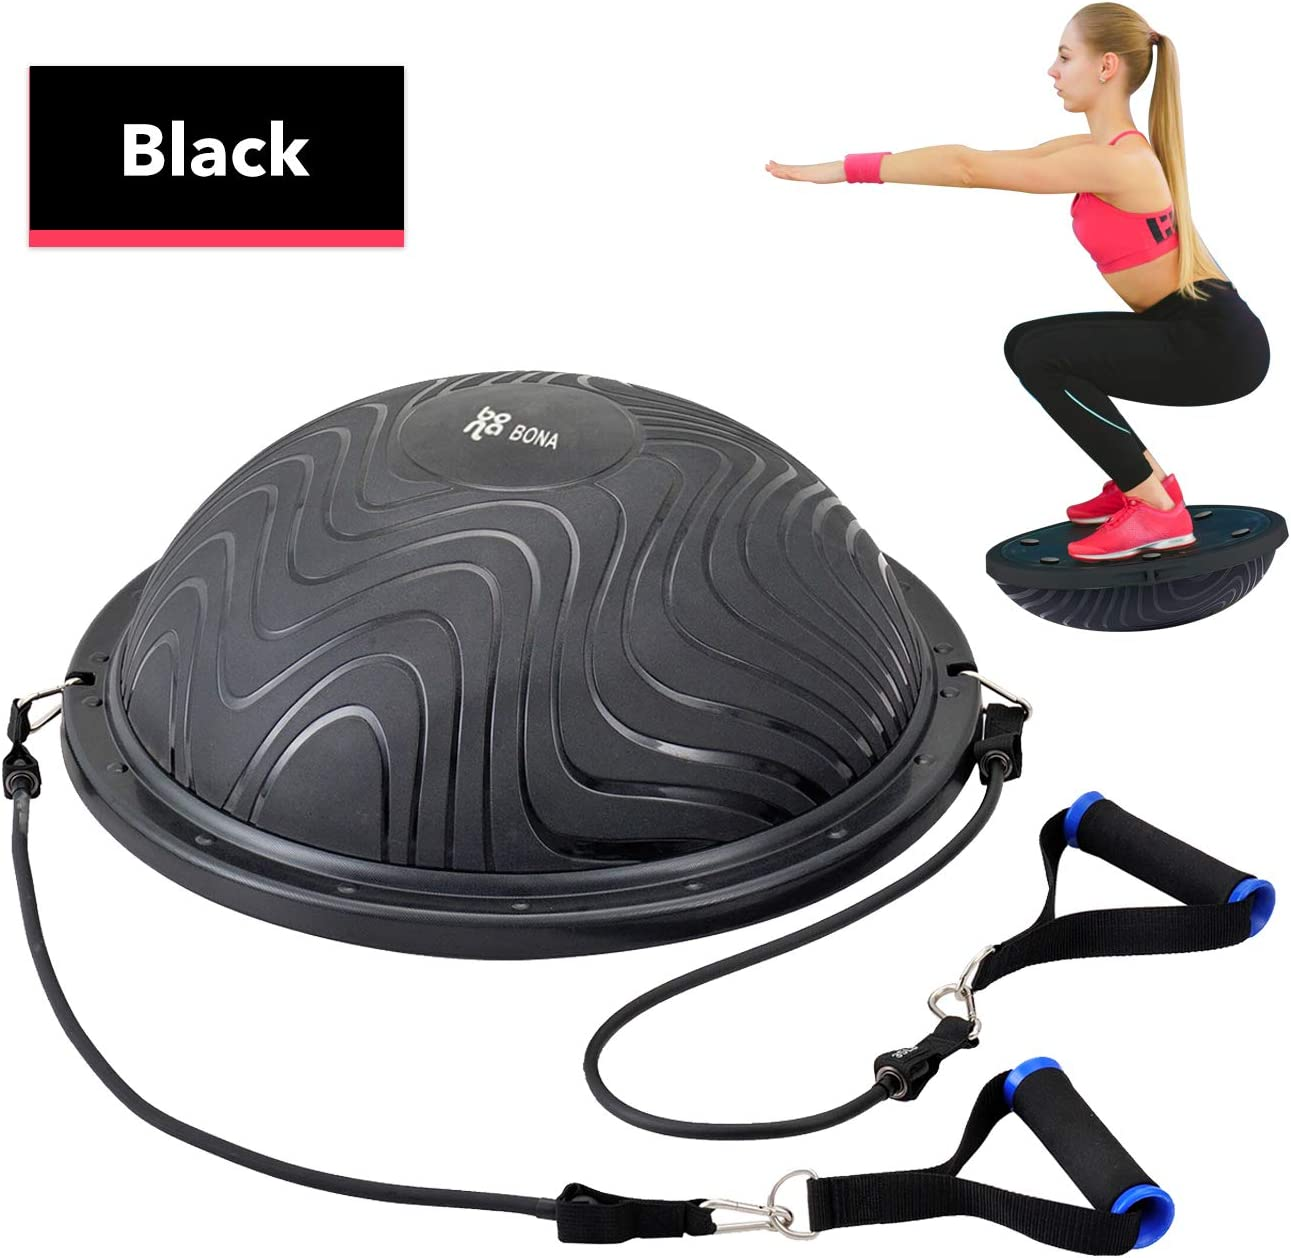 Newbona Balance Ball Trainer with Exercise Handles, Resistance Bands, Pump Door Anchors